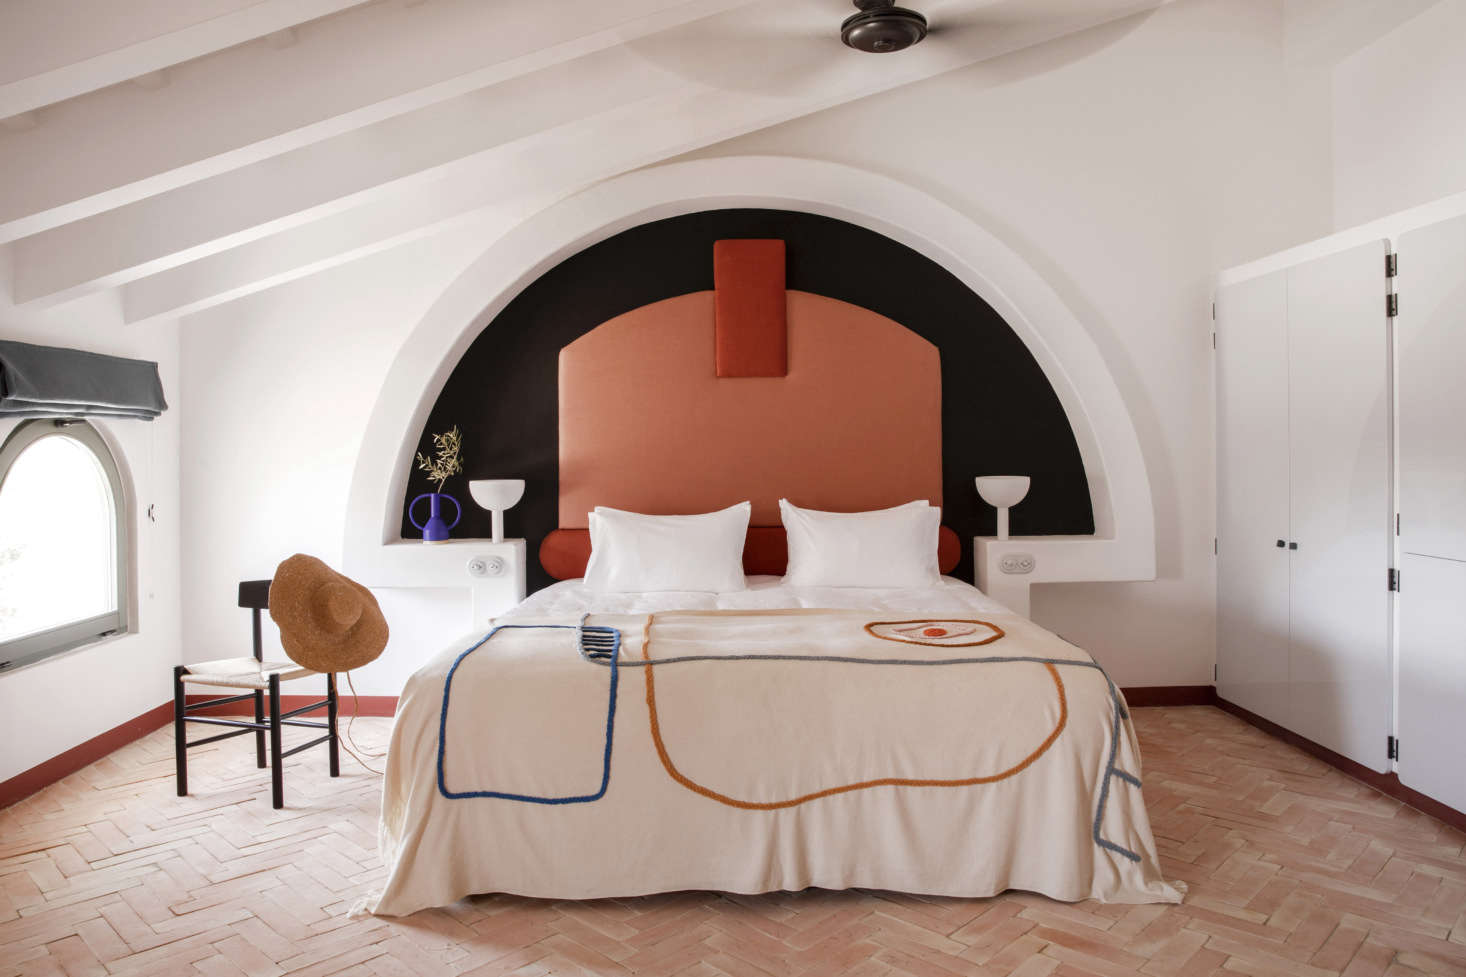 Meilichzon is known for her inventive beds—and never repeats herself. At Menorca Experimental, she built altar-like concrete alcoves finished in white lime and inset with upholstered headrests in two shades of terra-cotta. The embroidered cotton bedspreads were made for the hotel by textile and ceramic studioLRNCE of Morocco. The herringbone floor is composed of terra-cotta.